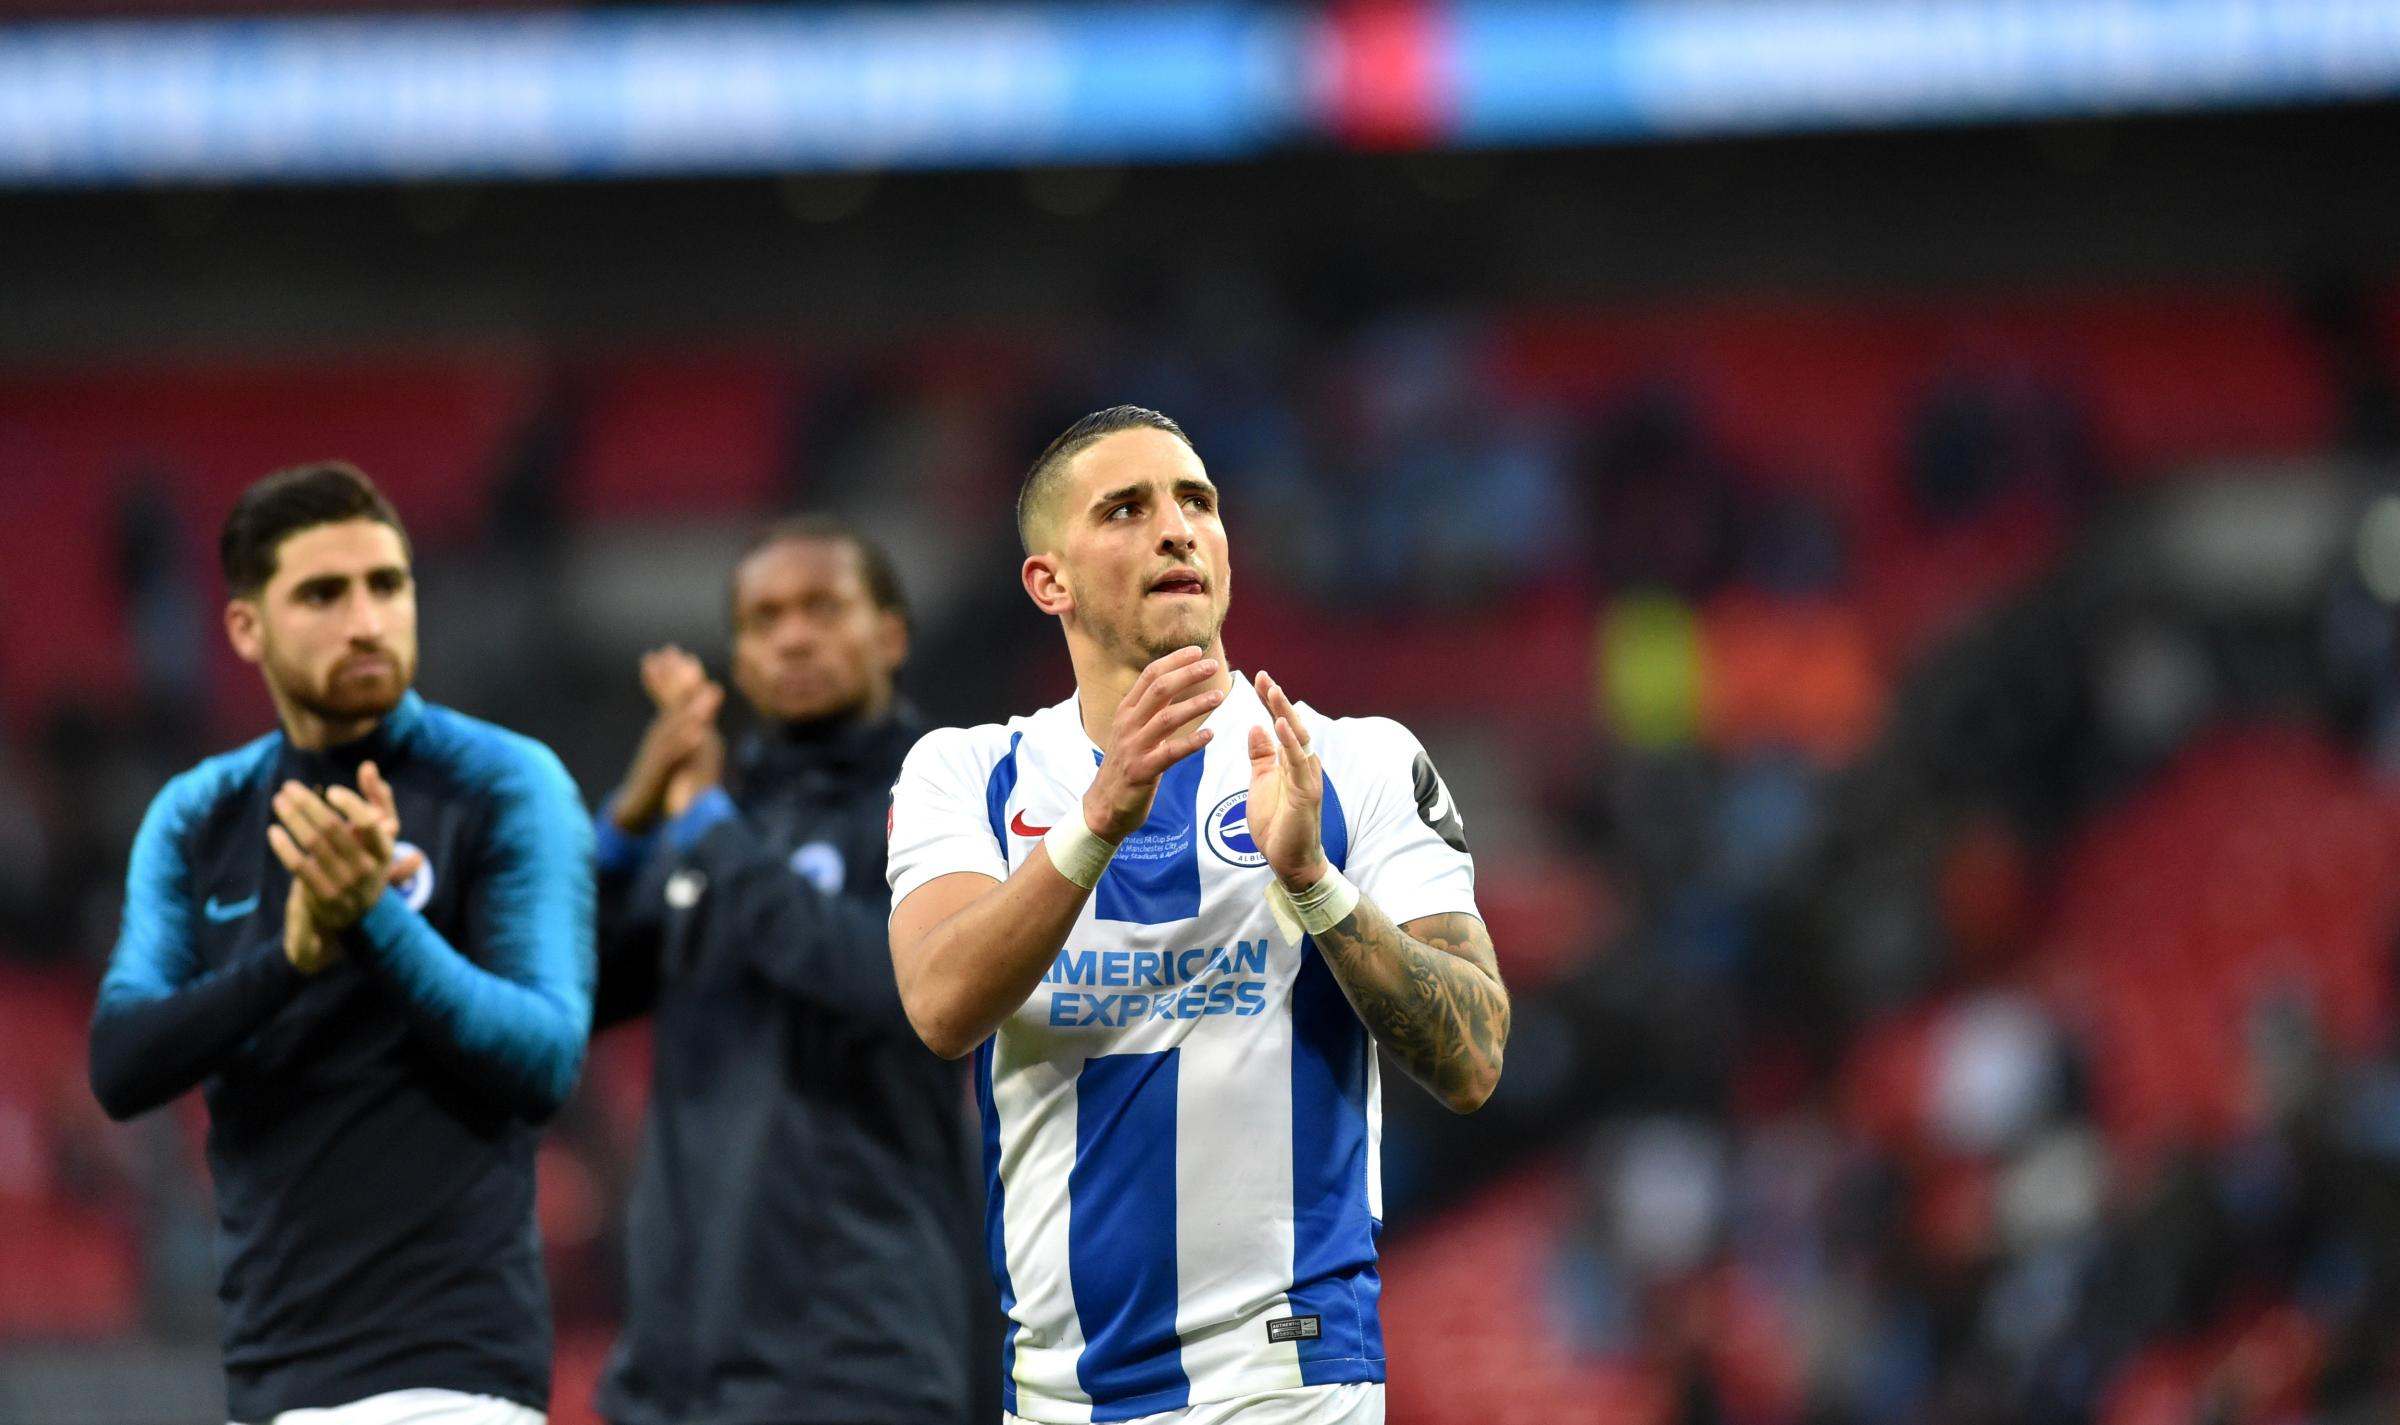 Anthony Knockaert says the semi-final at Wembley was a gala day but the next two Premier games are even more important